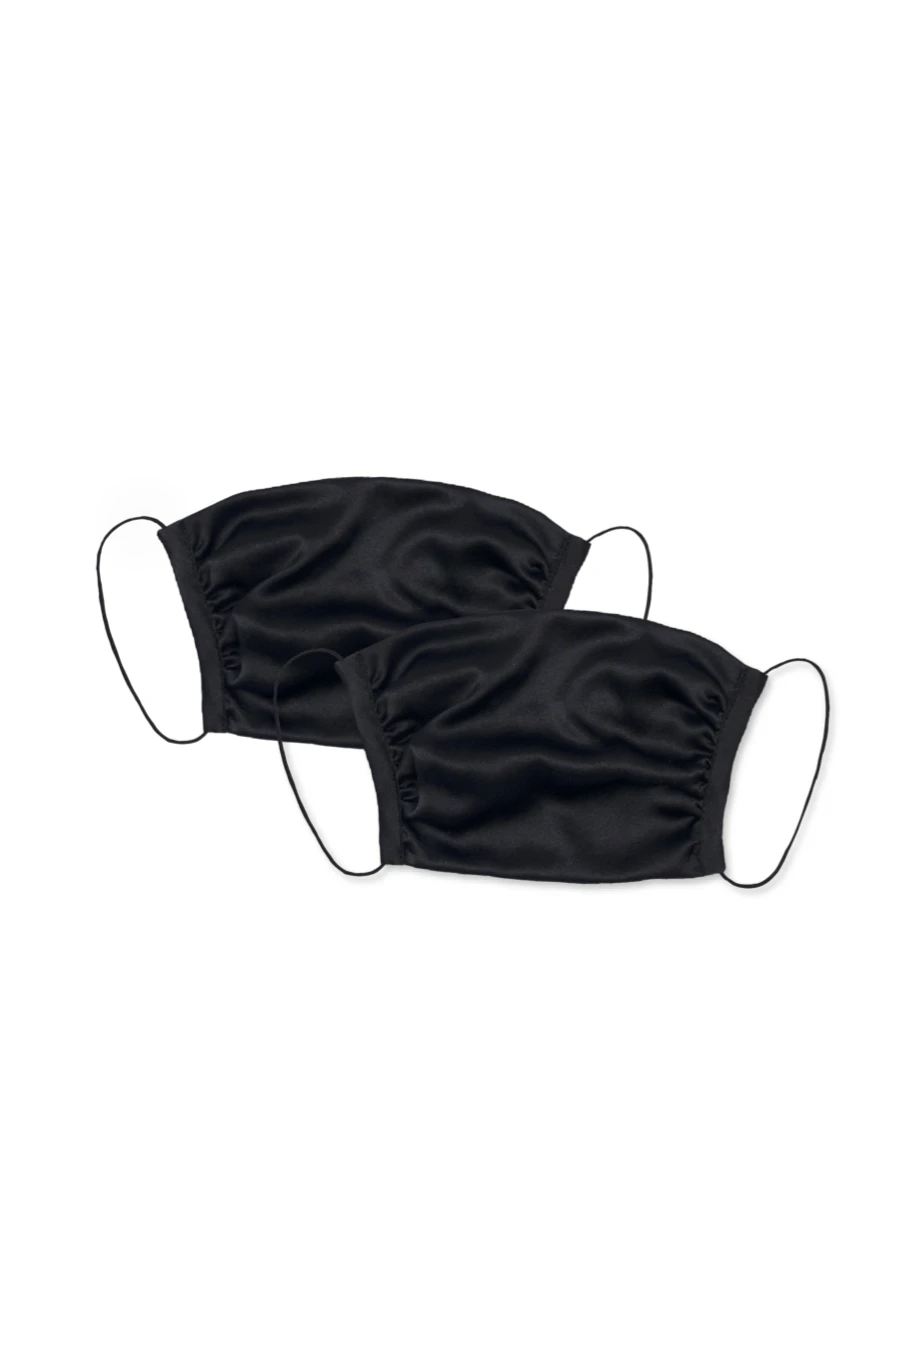 Peace Silk Face Covering, 2-Pack